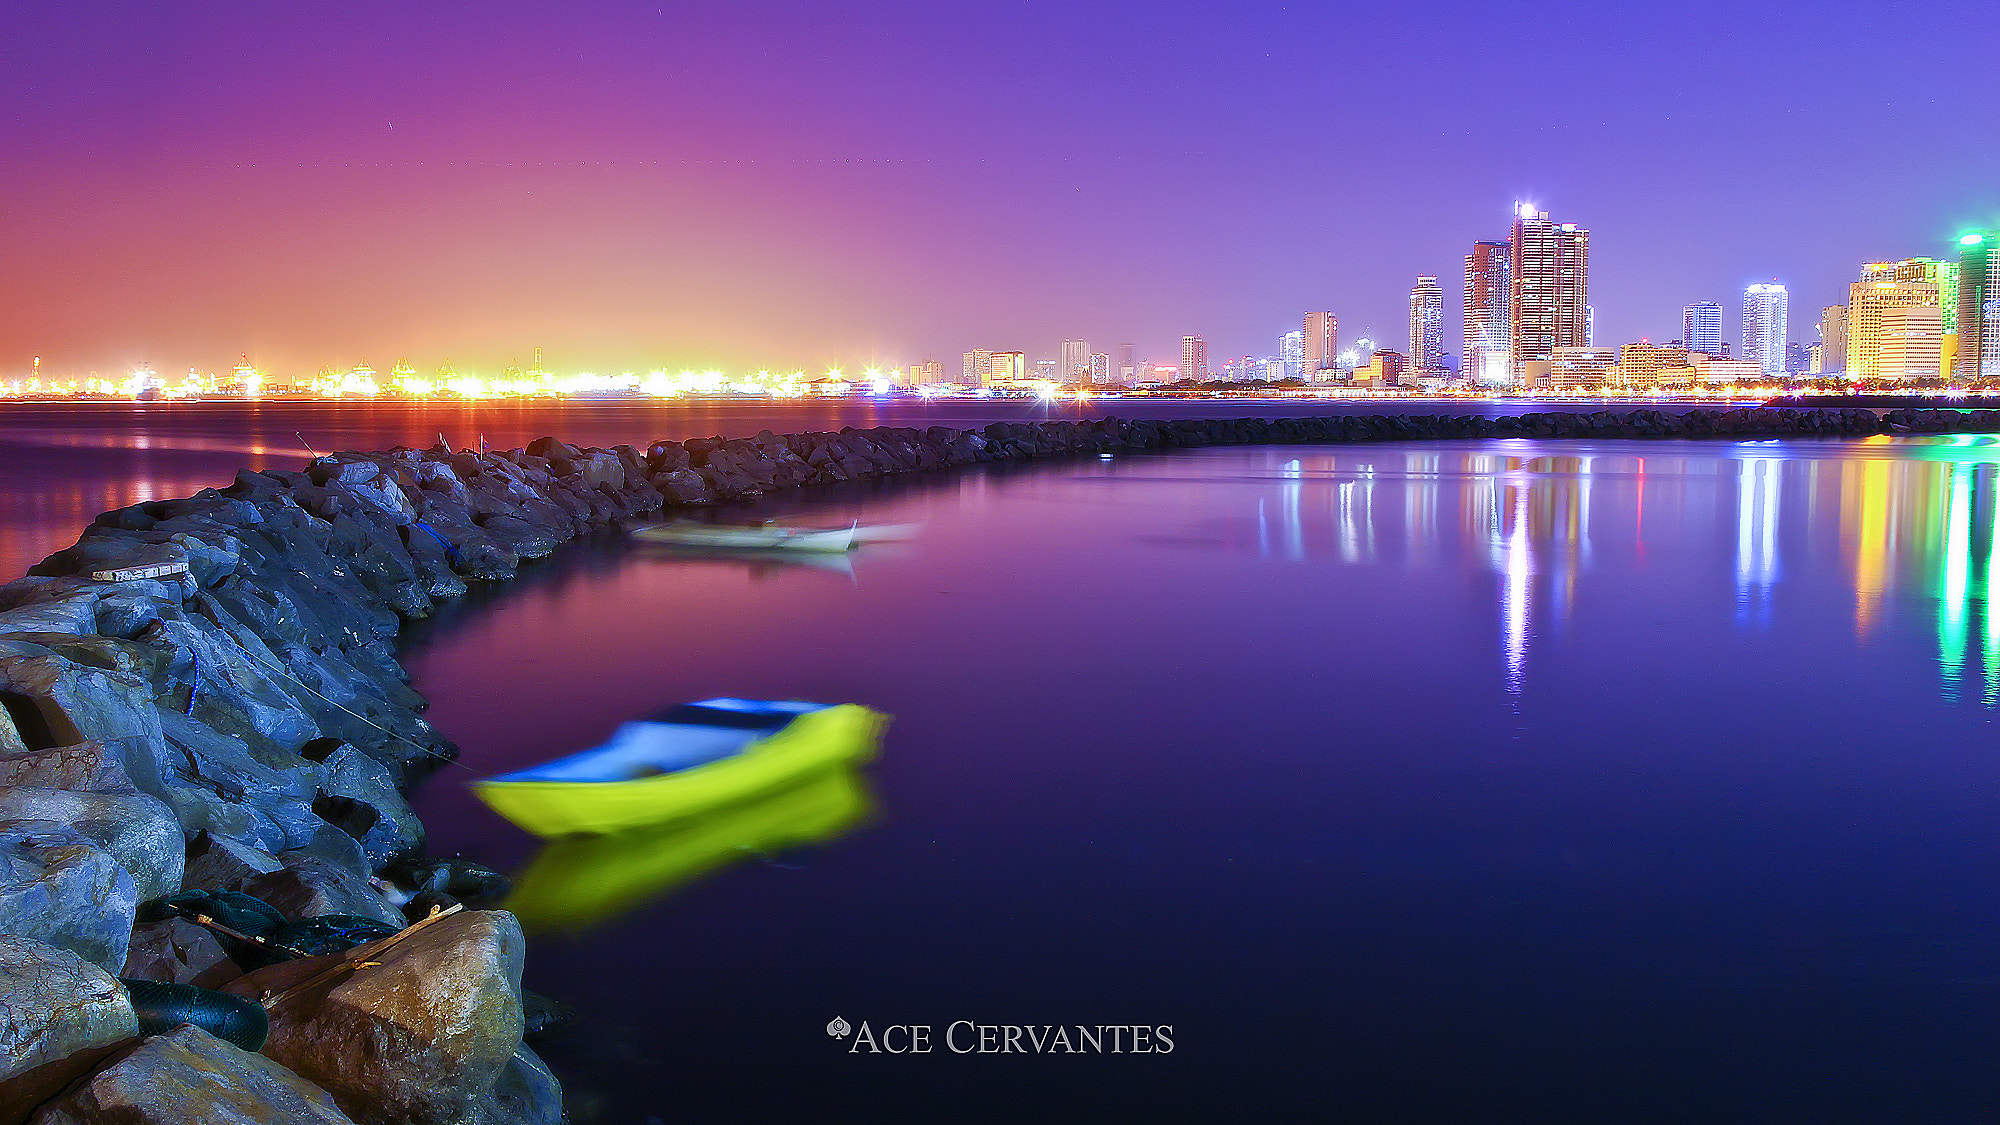 Photograph Boats in Bright City Lights by Ace Cervantes on 500px